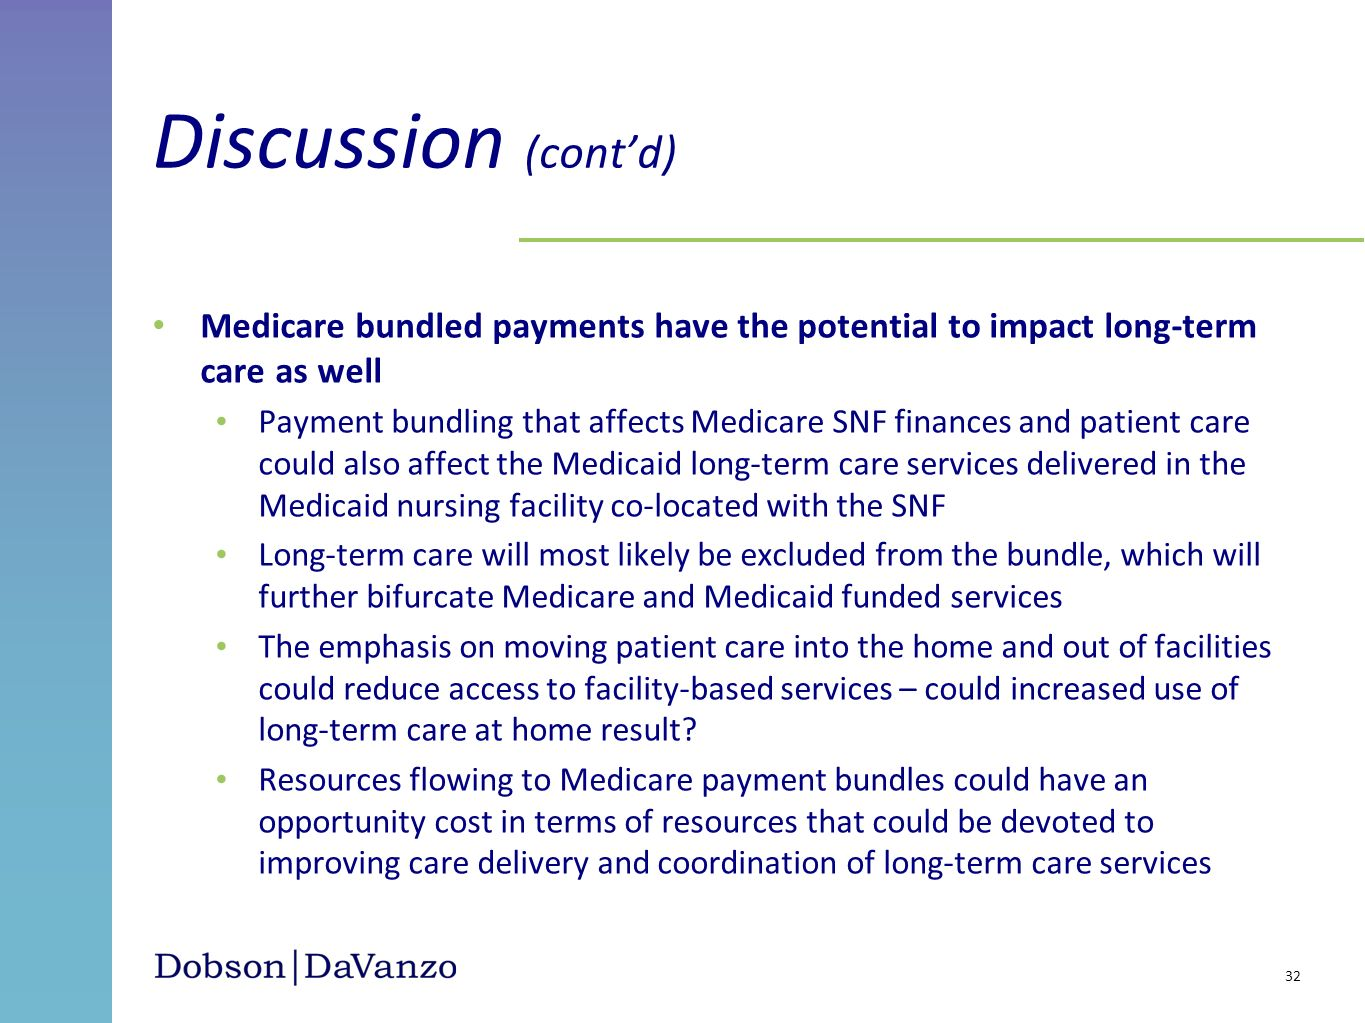 Discussion (cont'd) Medicare bundled payments have the potential to impact long-term care as well.